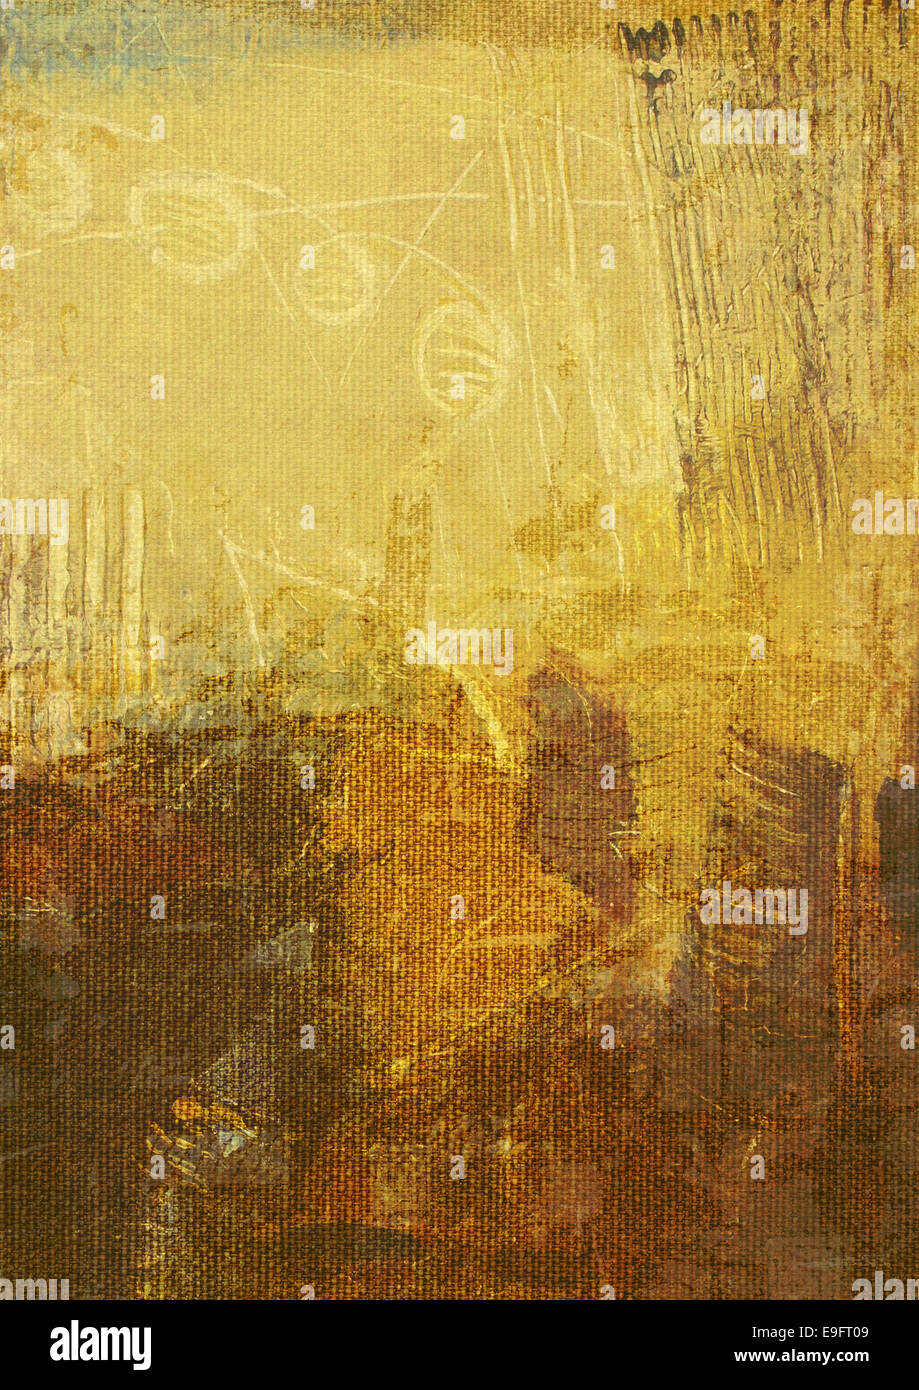 brown oil paints on canvas - Stock Image